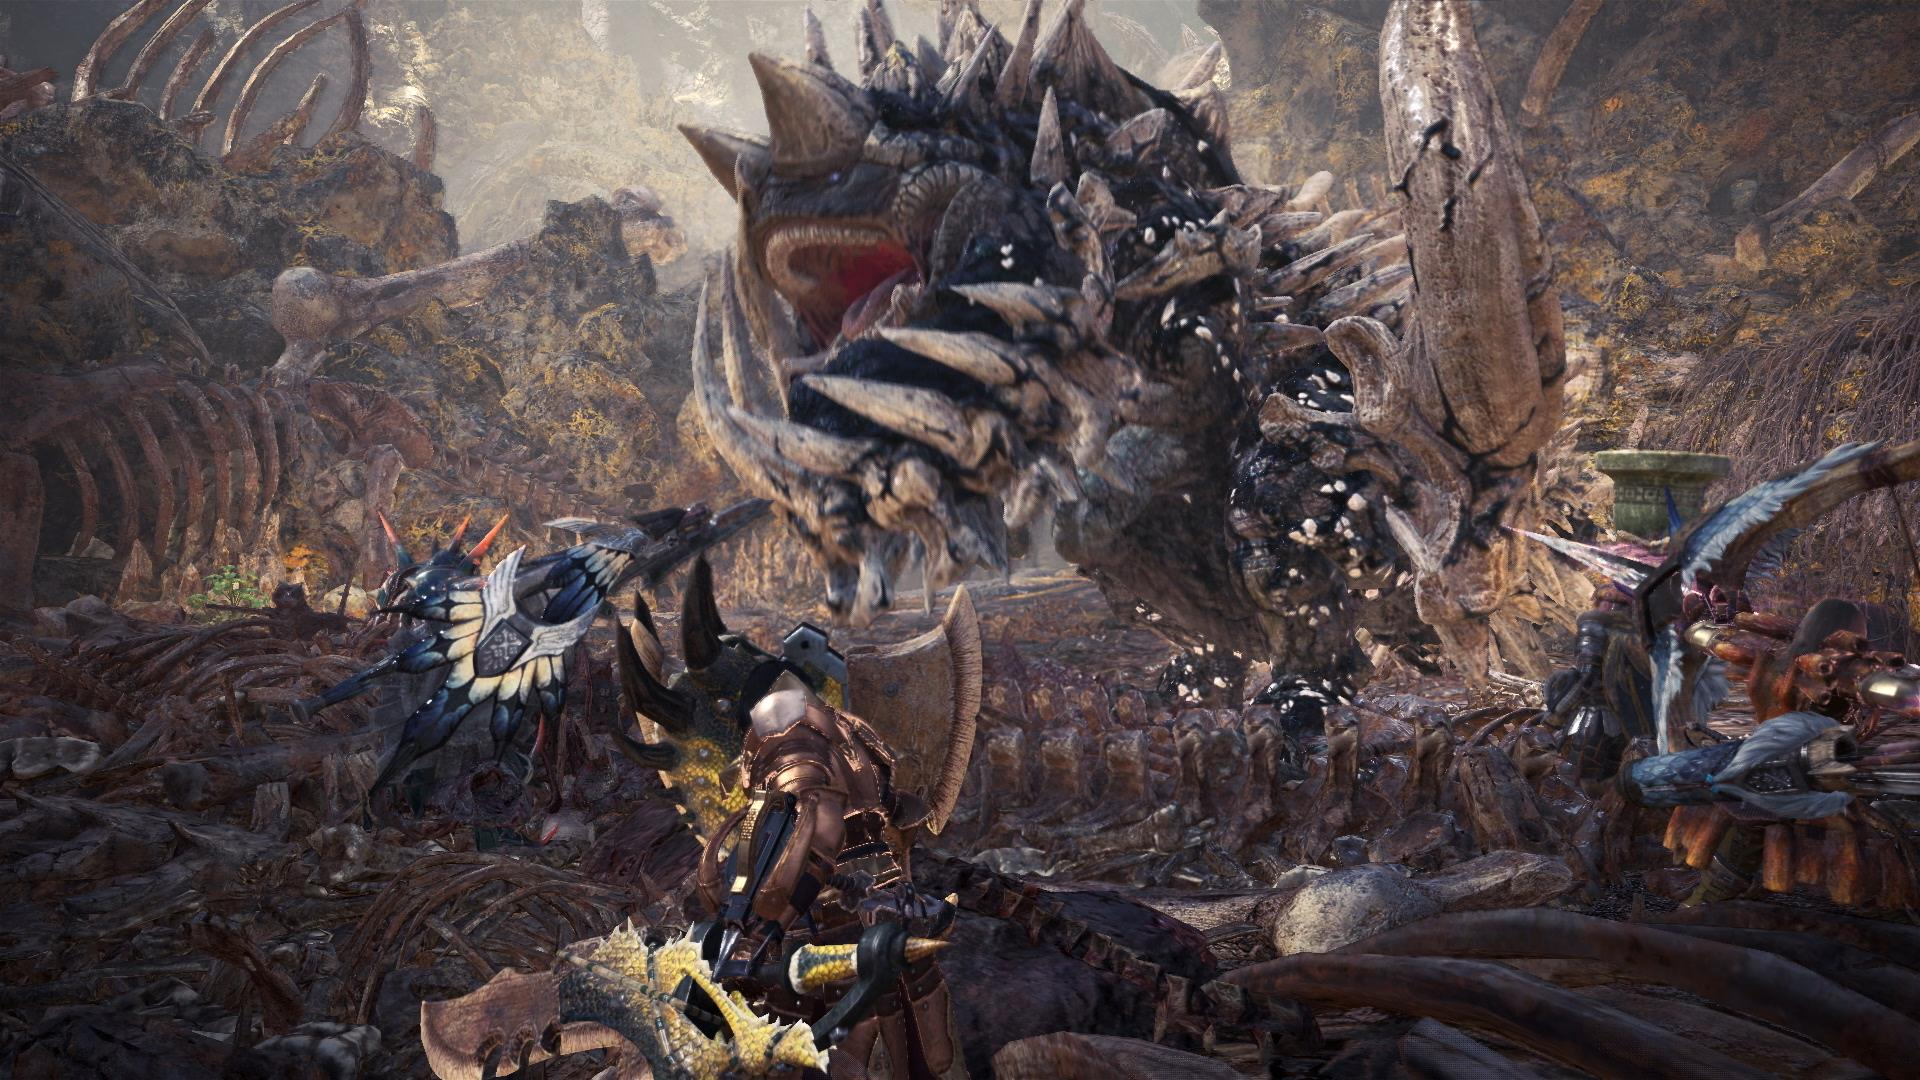 Monster Hunter World Features All Sorts Of Unlockable Weapons Even At Low Rank - Vg247-5273